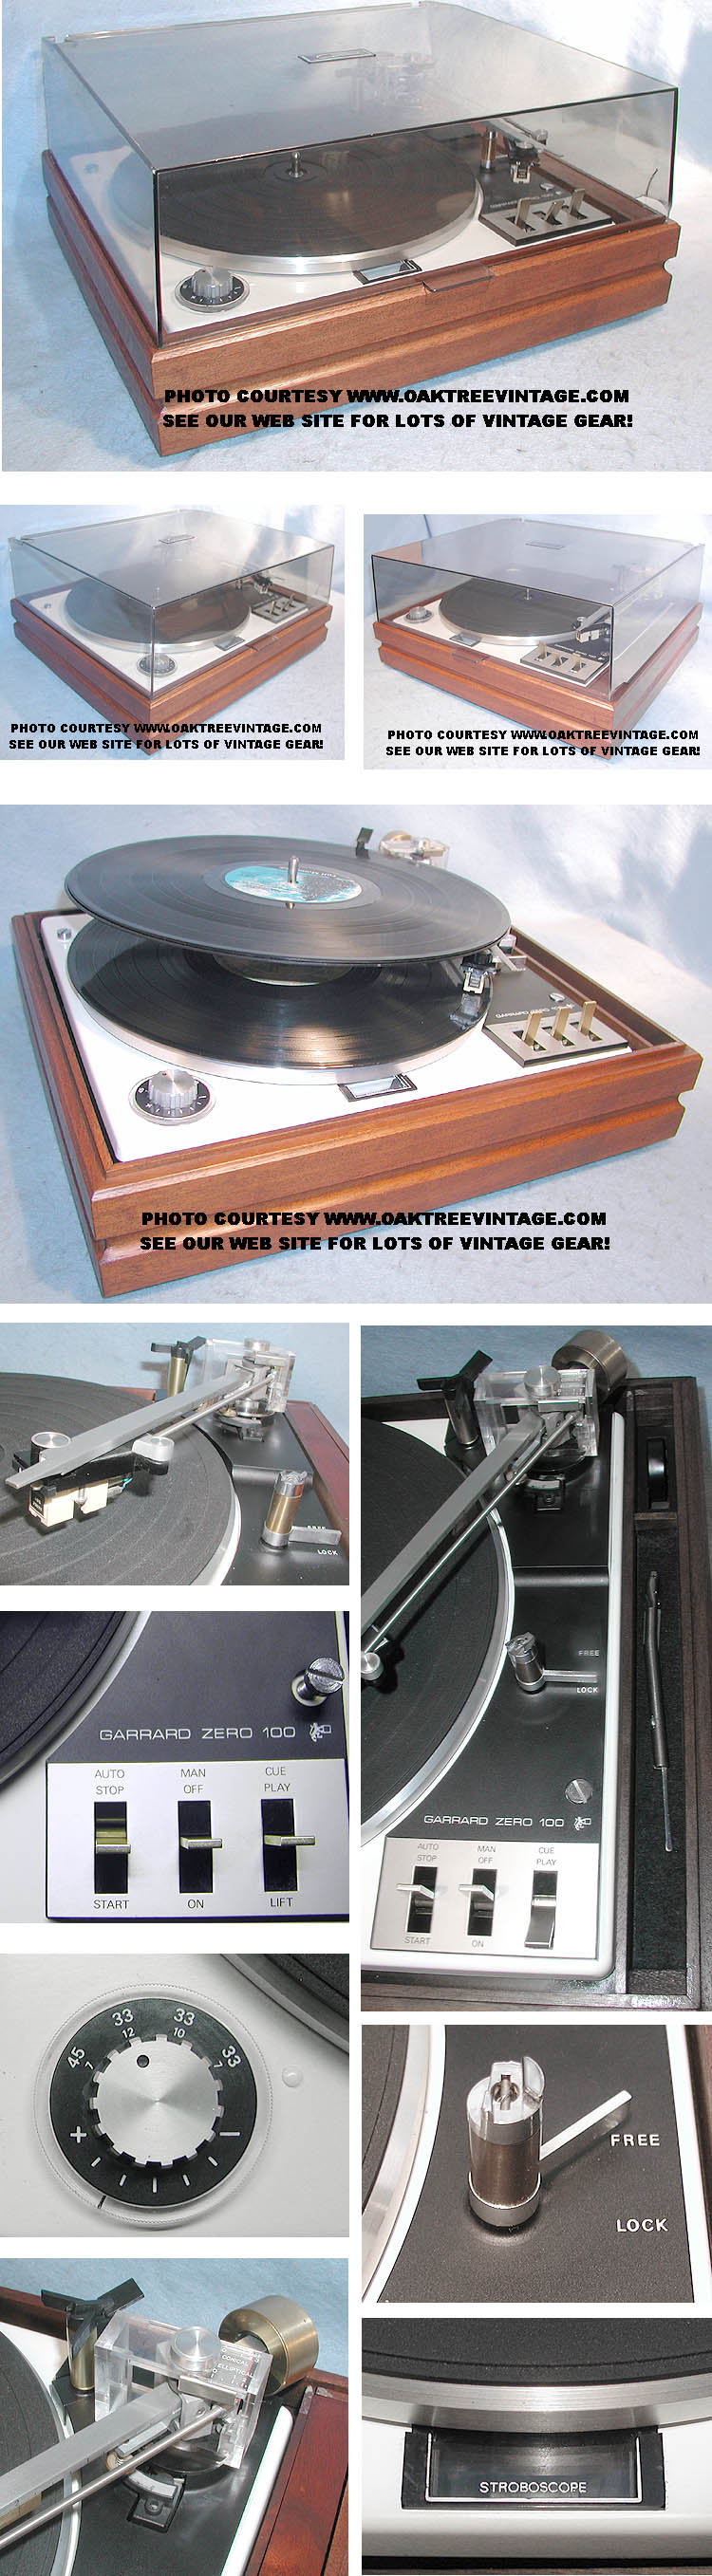 Vintage / Used Garrard Stereo Turntables / Phonographs